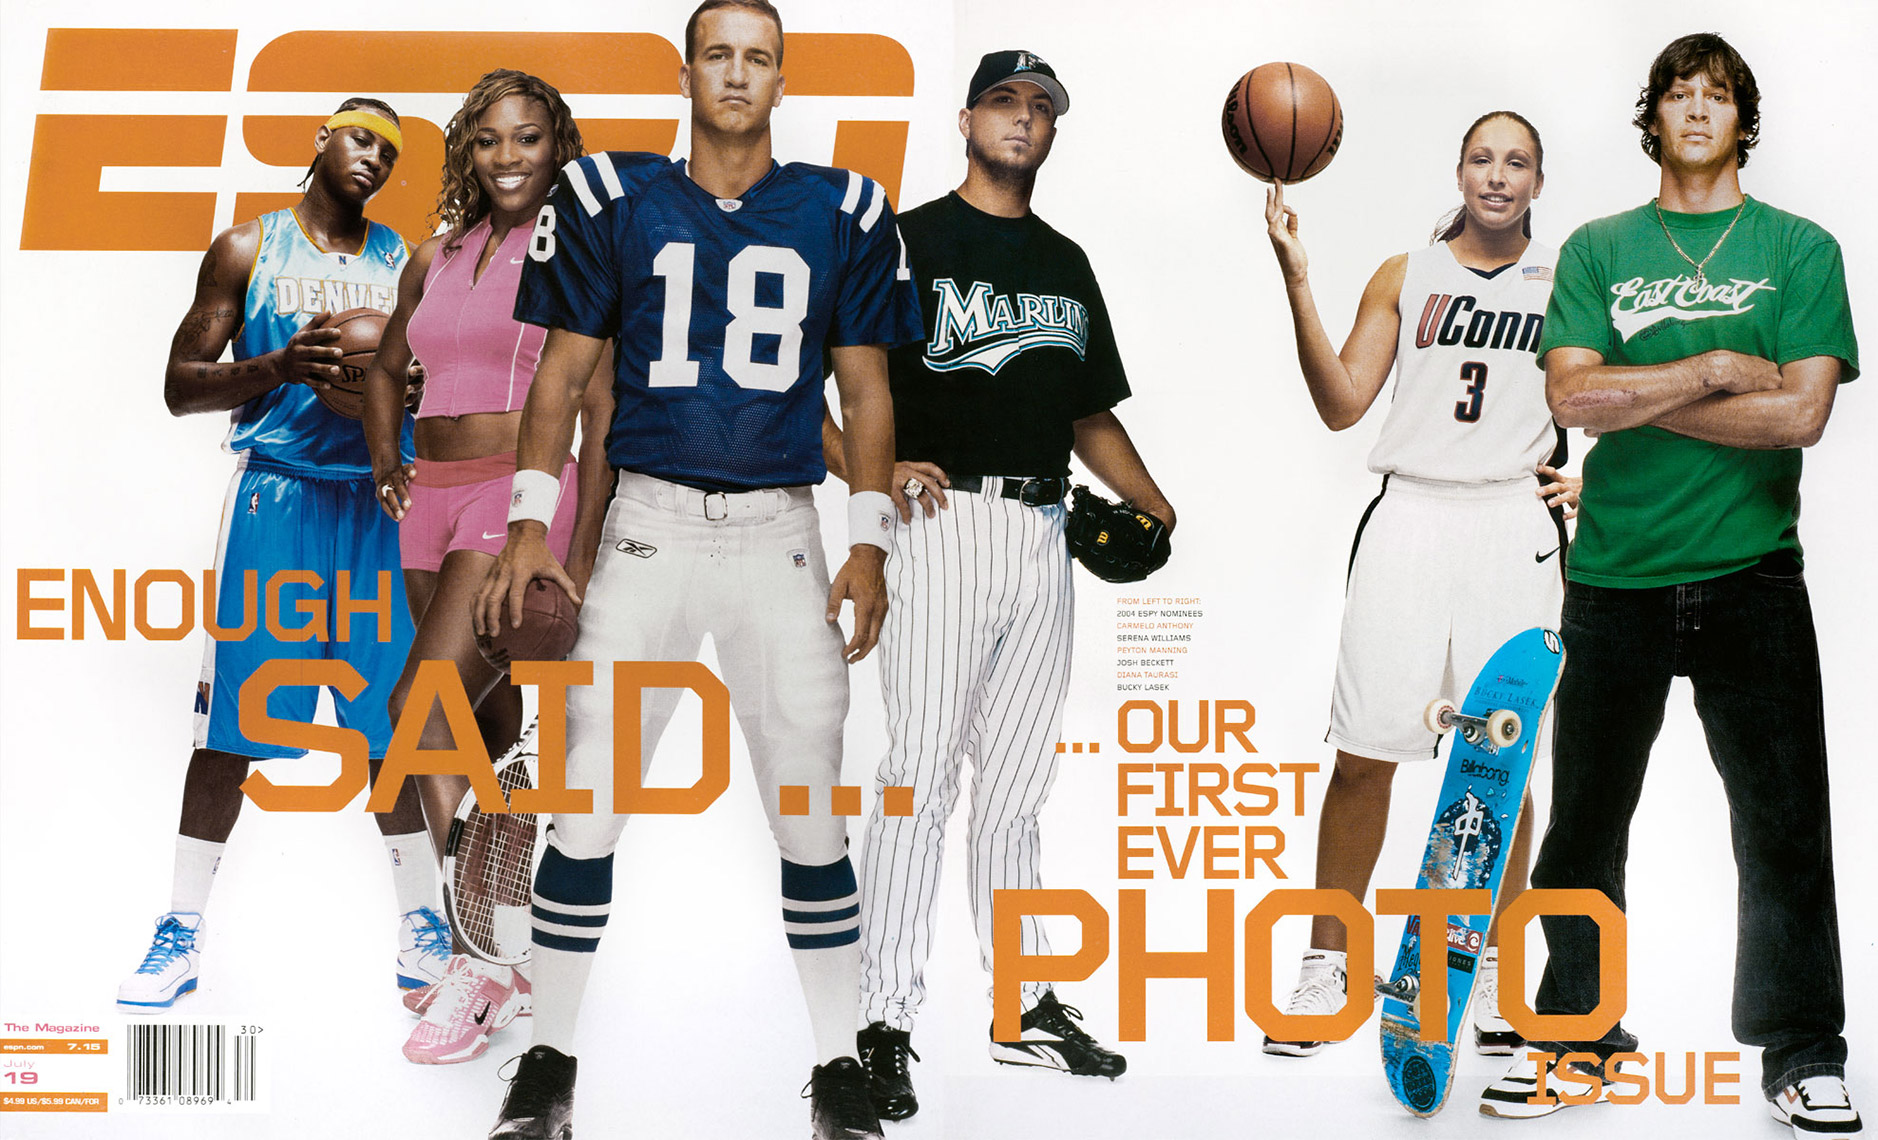 ESPN-photo-issue-full